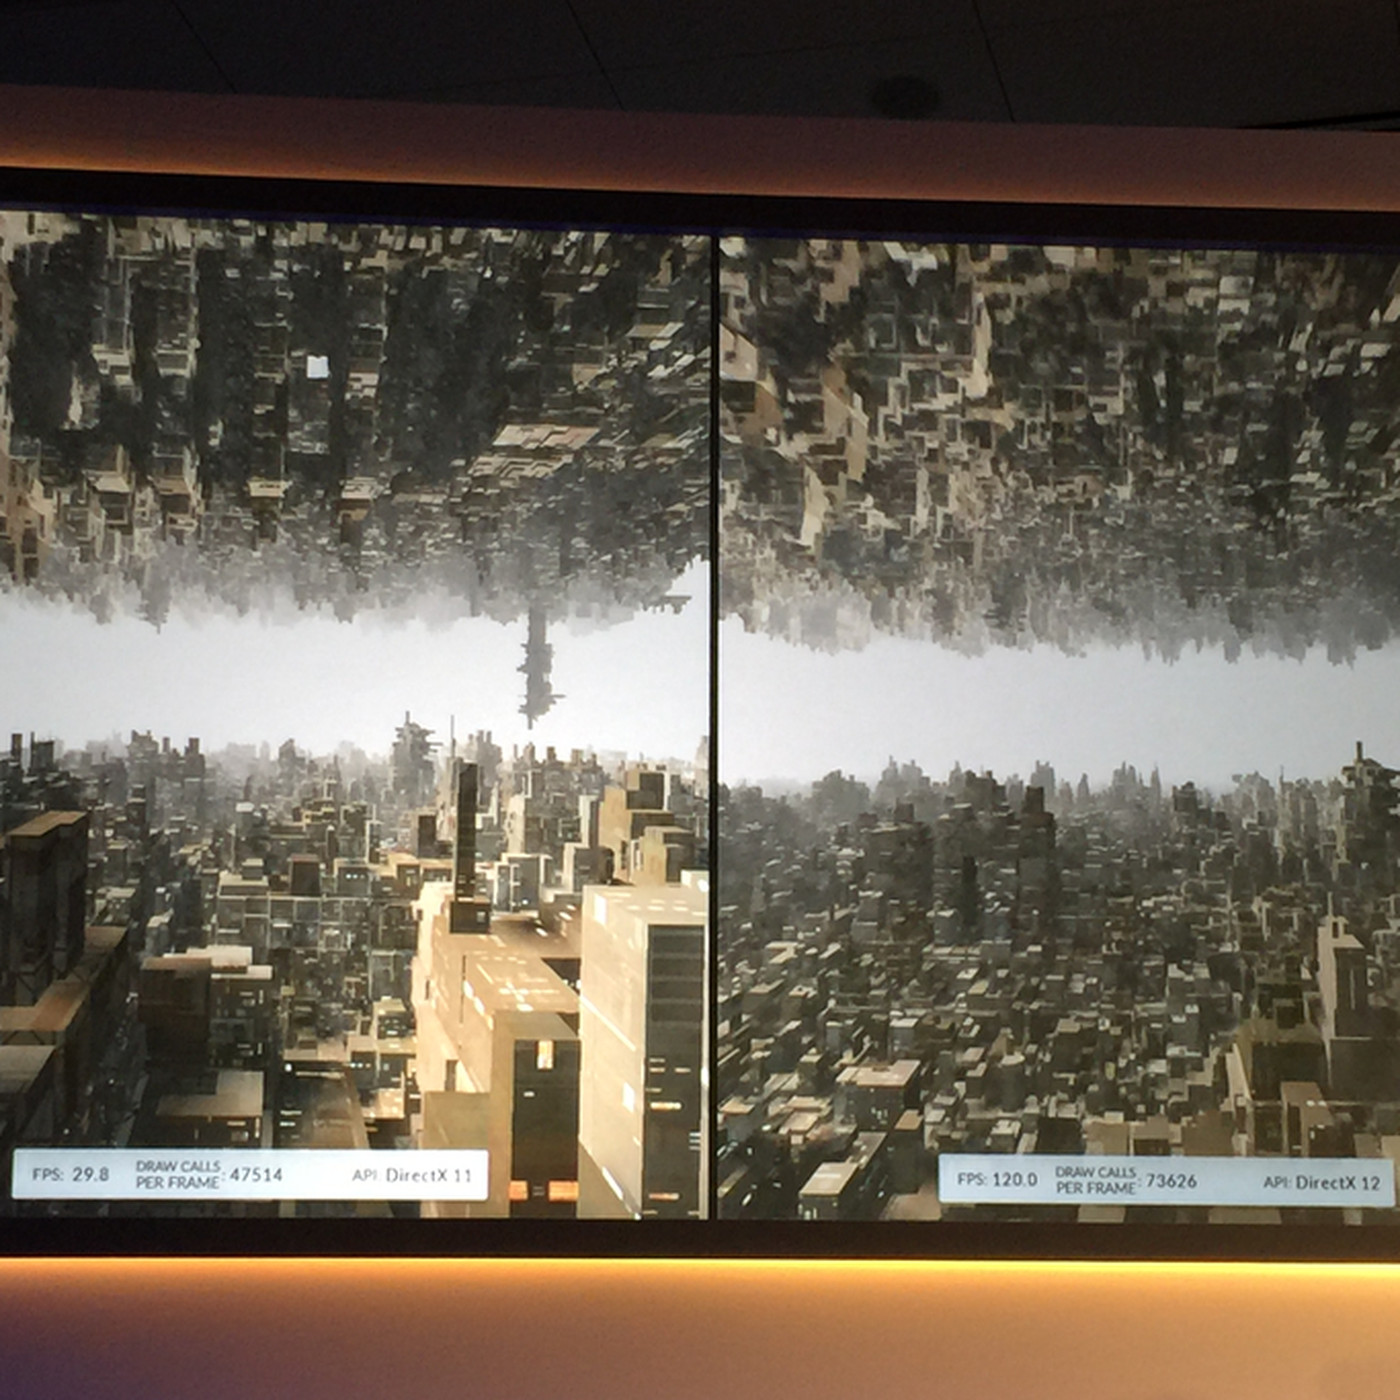 DirectX 12 won't require a new graphics card, but some of